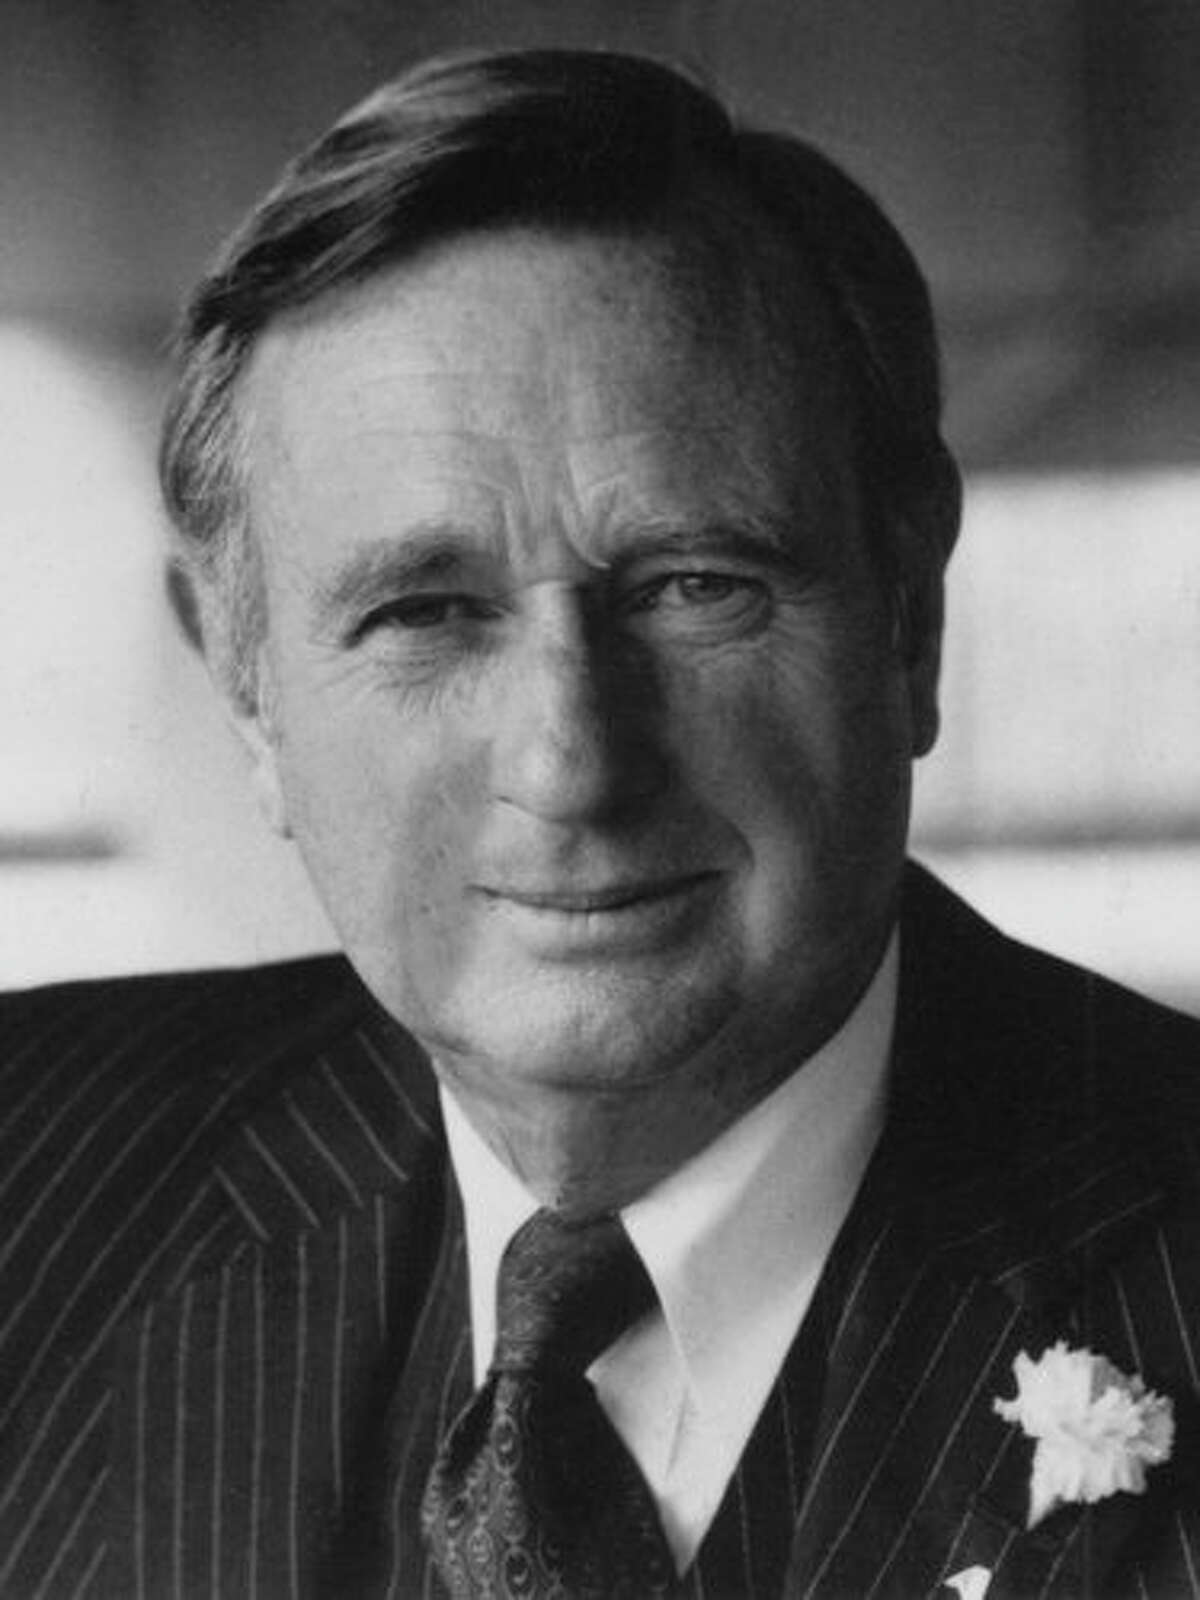 William May, the chairman and chief executive of American Can Co. for 15 years who was instrumental in moving the company's headquarters to Greenwich in 1972, died Sunday, Sept. 18, 2011, at Greenwich Hospital. He was 95.